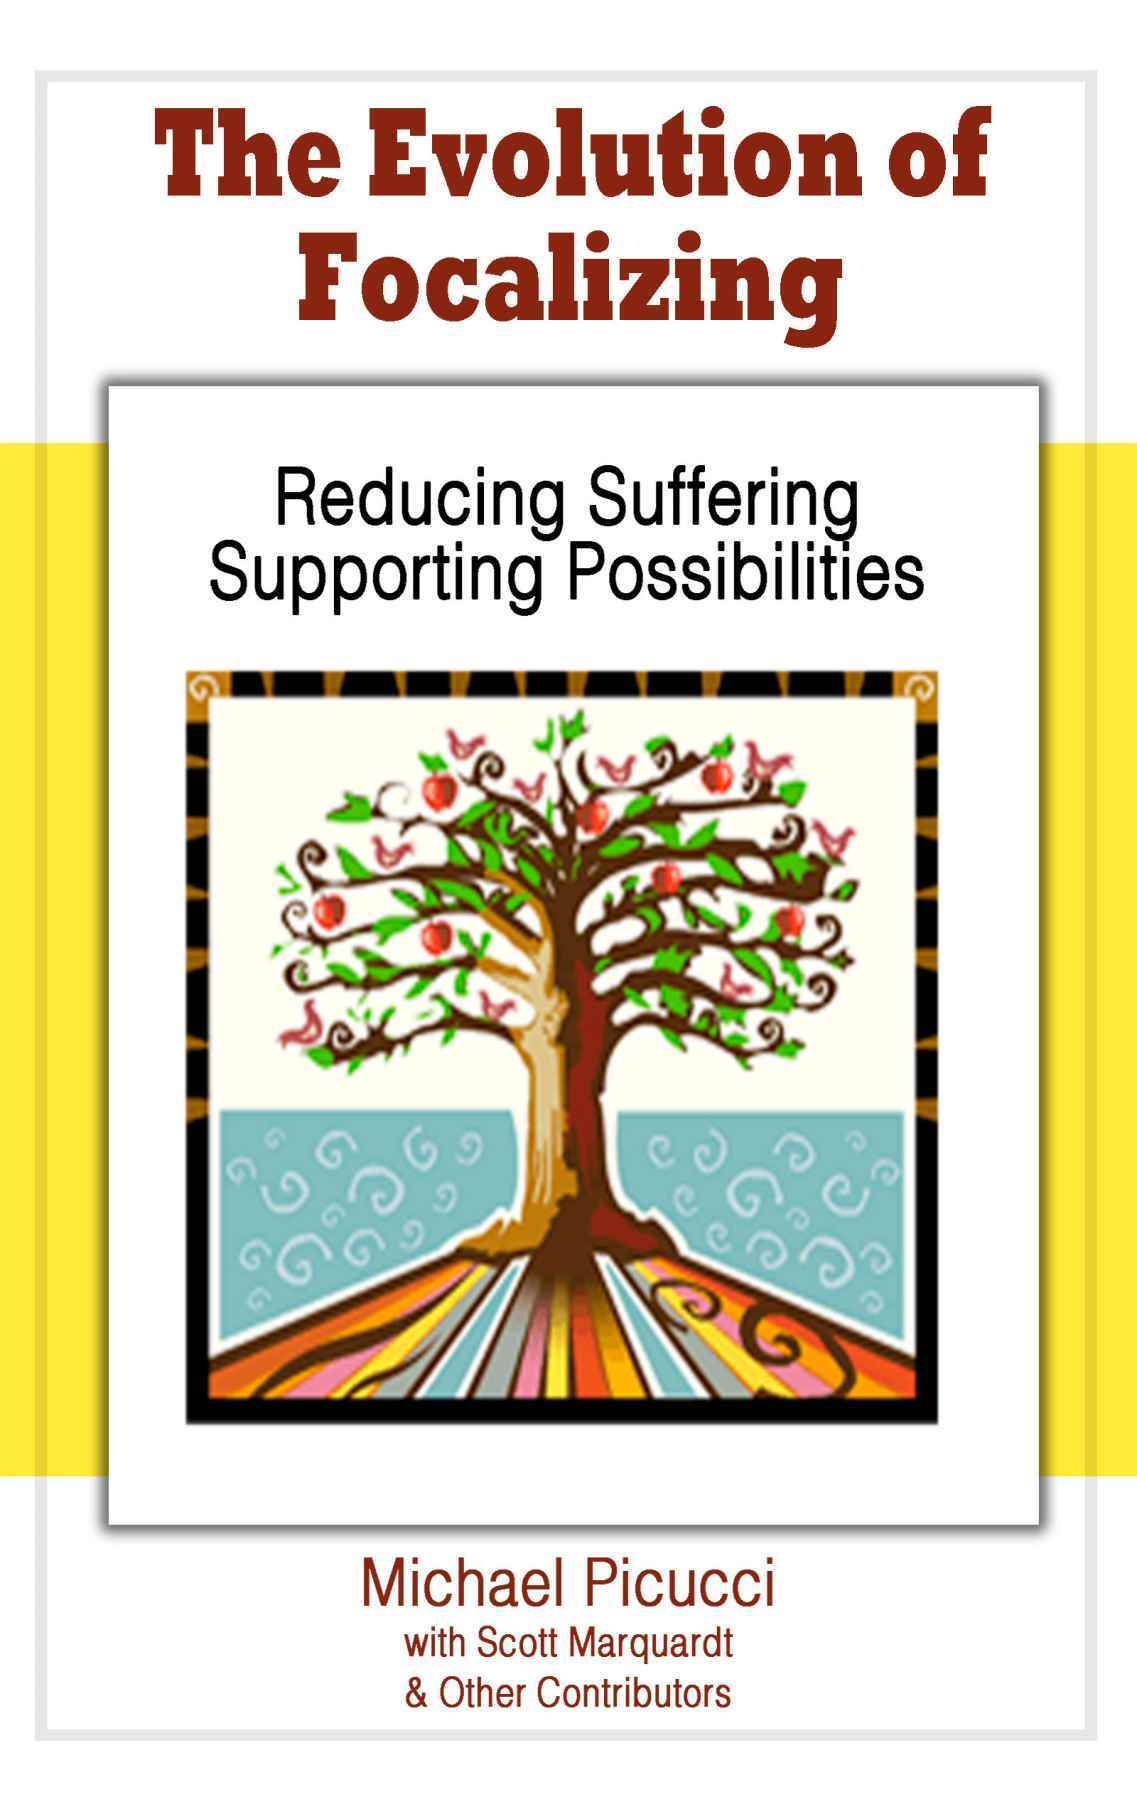 The Evolution of Focalizing    This book gives an overview of some of the most effective areas to start or further enhance a healing journey. The principles within are the corner stones of the Focalizing process.